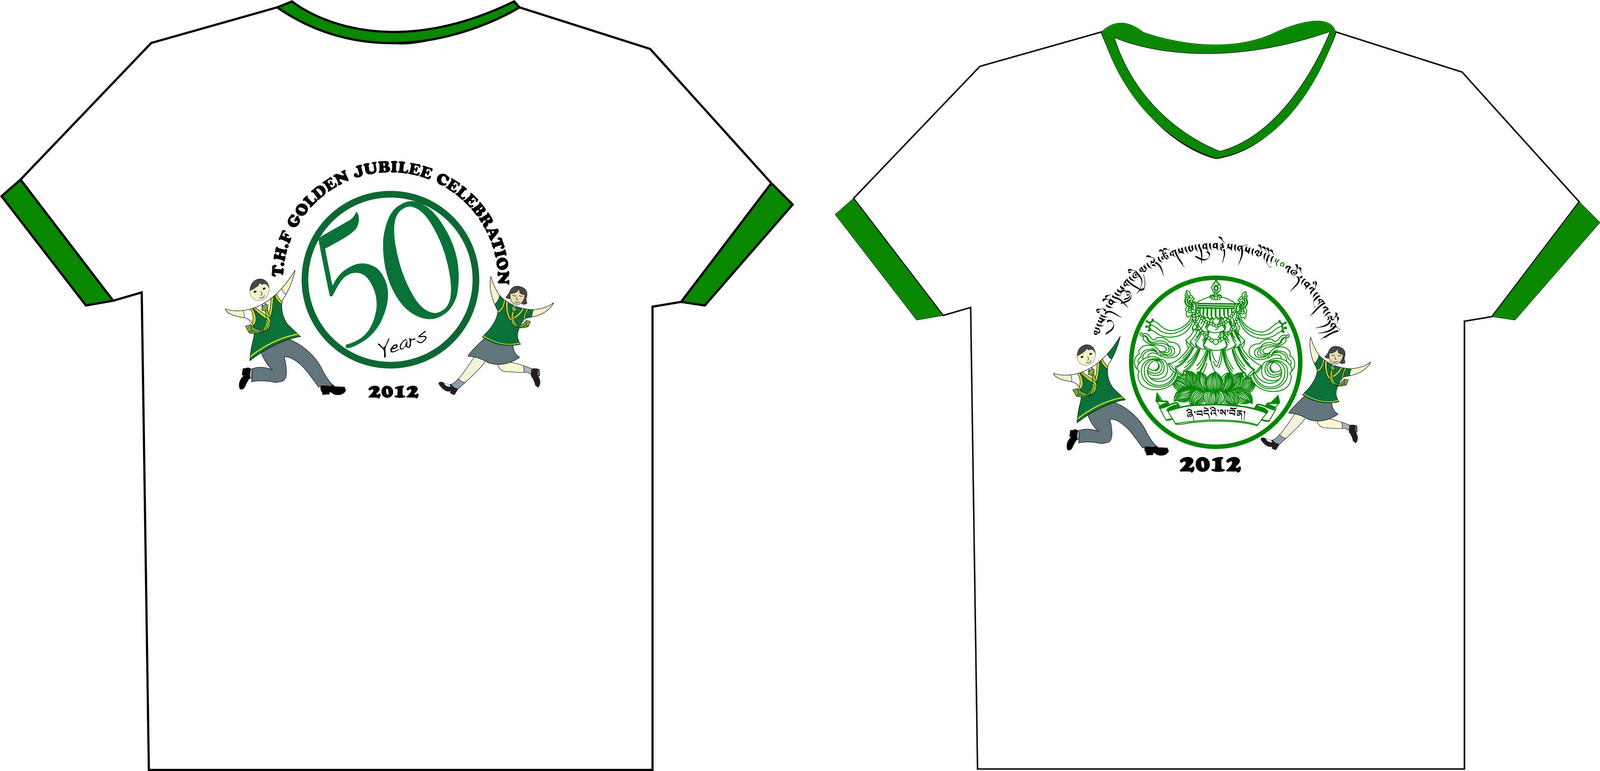 shirt design for tibetan homes school golden jubilee celebration